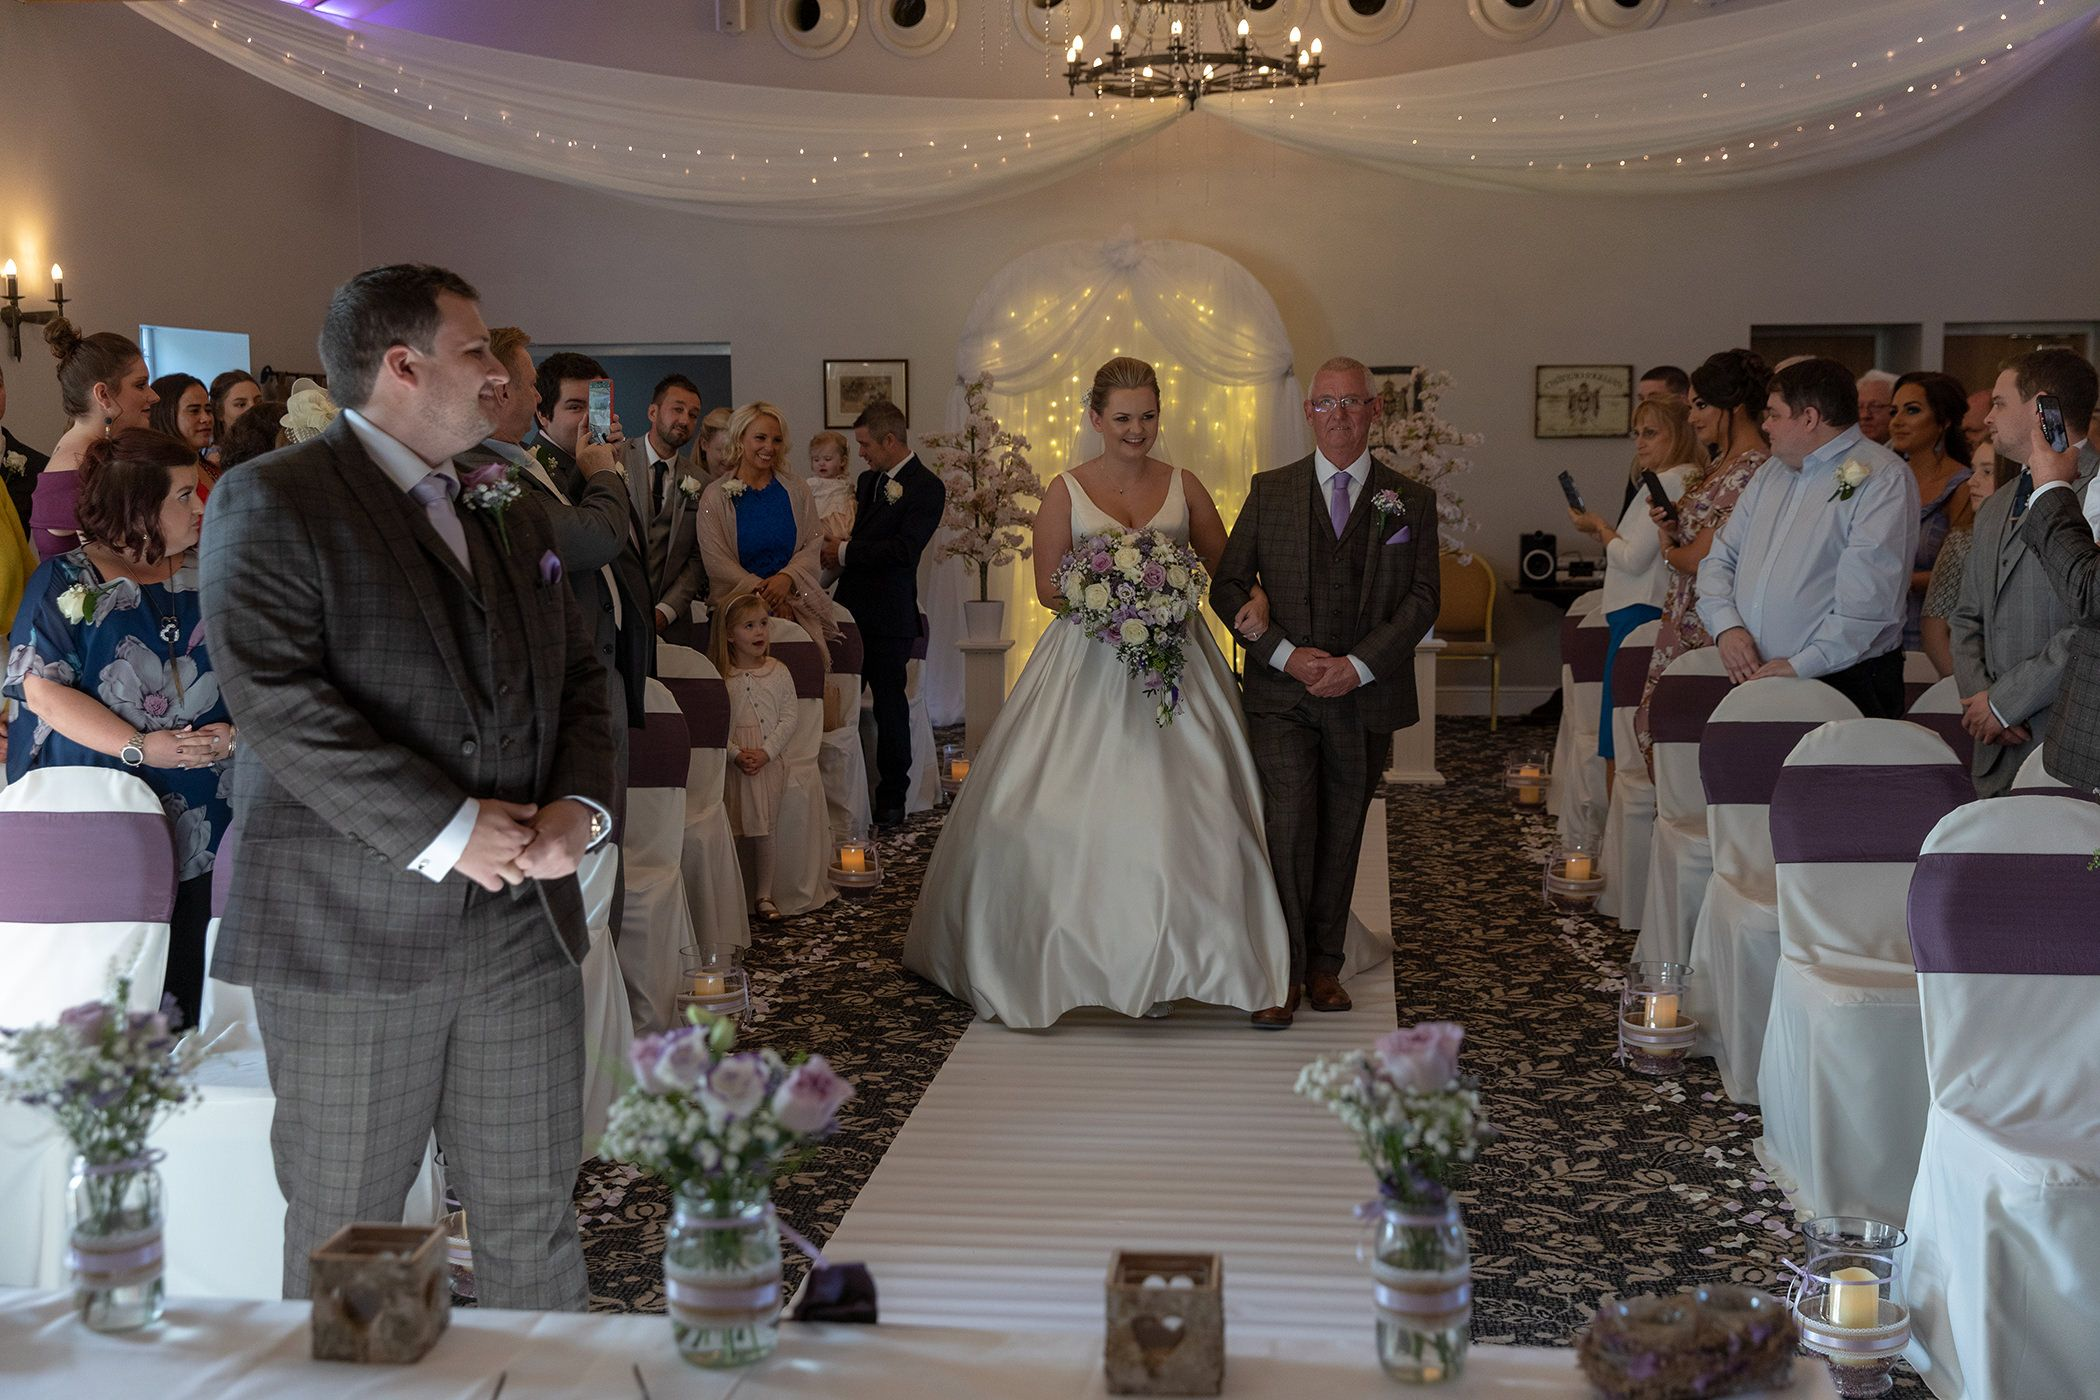 the bride walks down the aisle